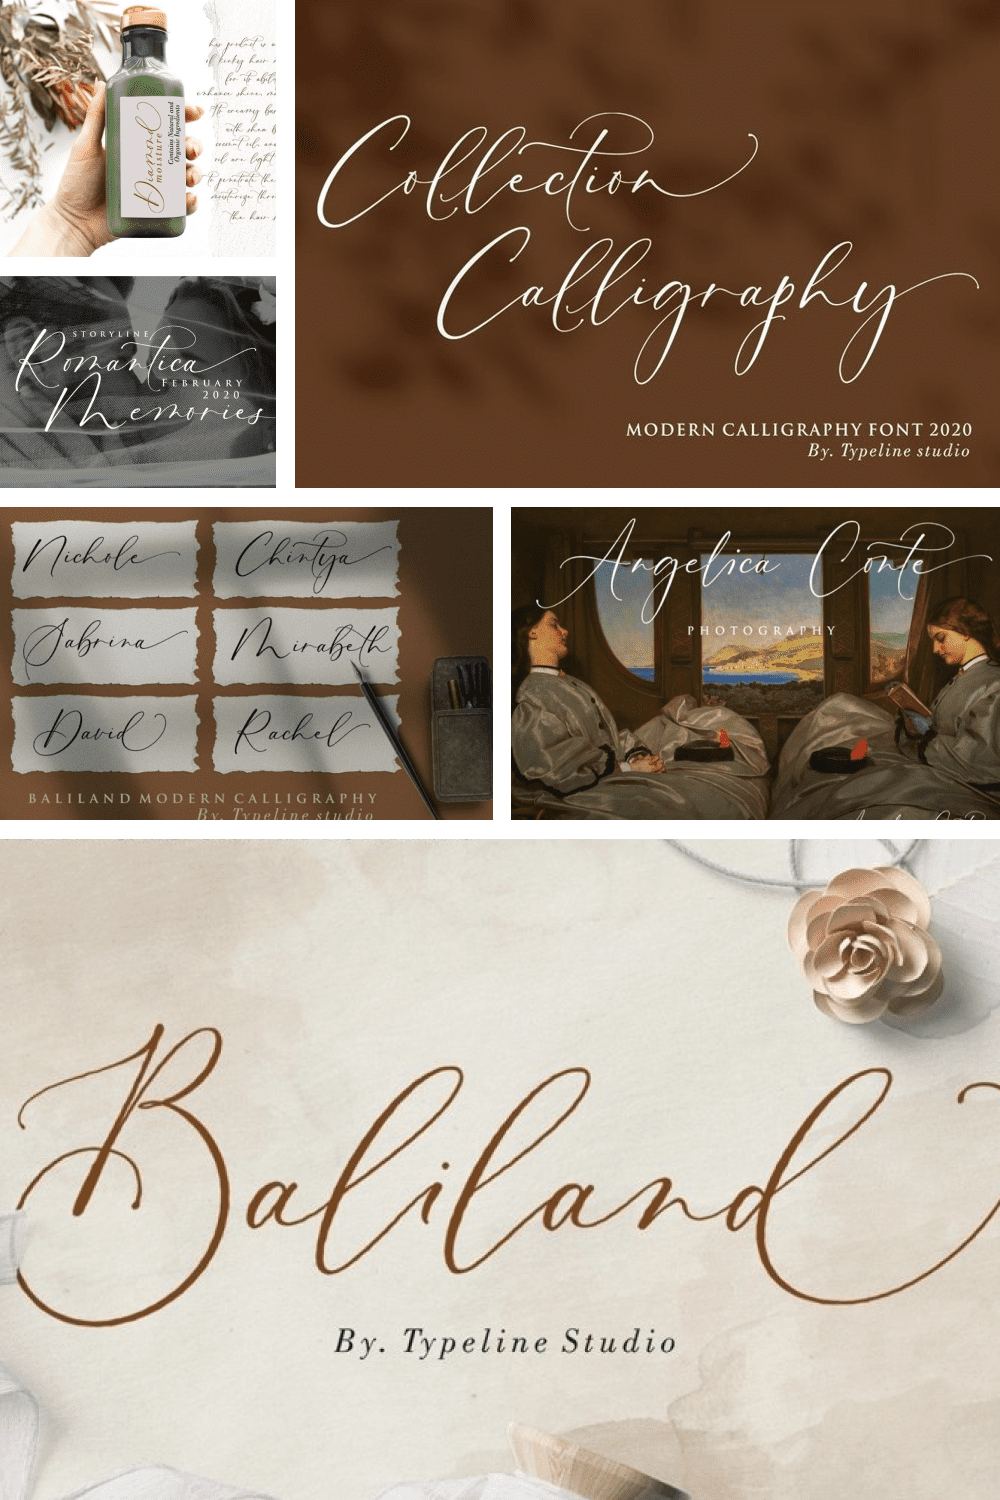 This is a modern Calligraphy font ant Baliland is inspired by the beauty of Bali insland which is full of romance.